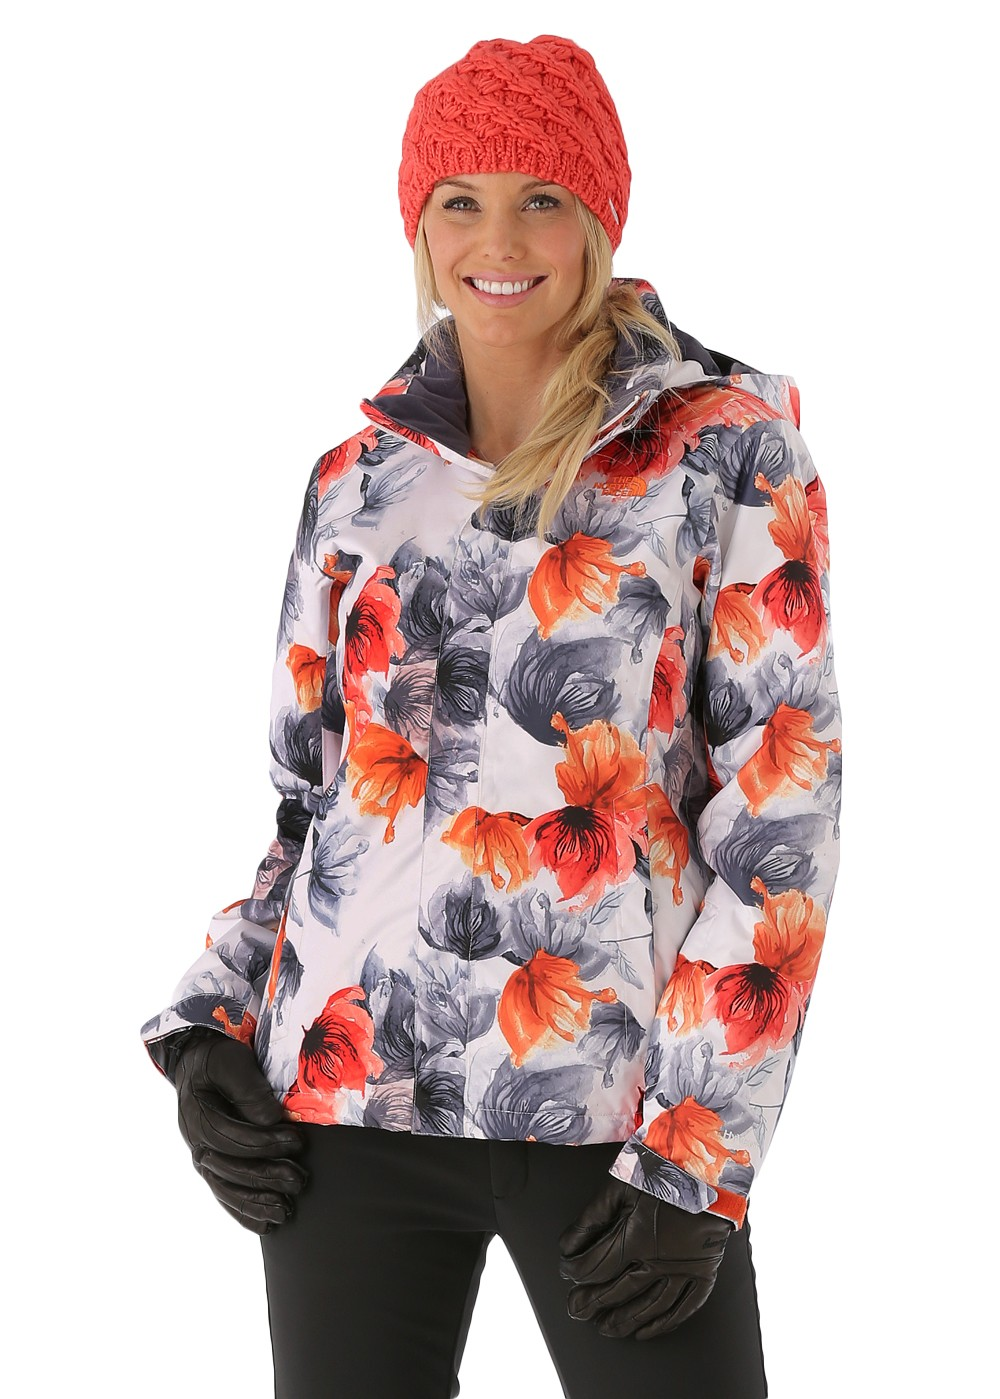 Ski Fashion 2013-2014: Trends In Women's Ski And Snowboard